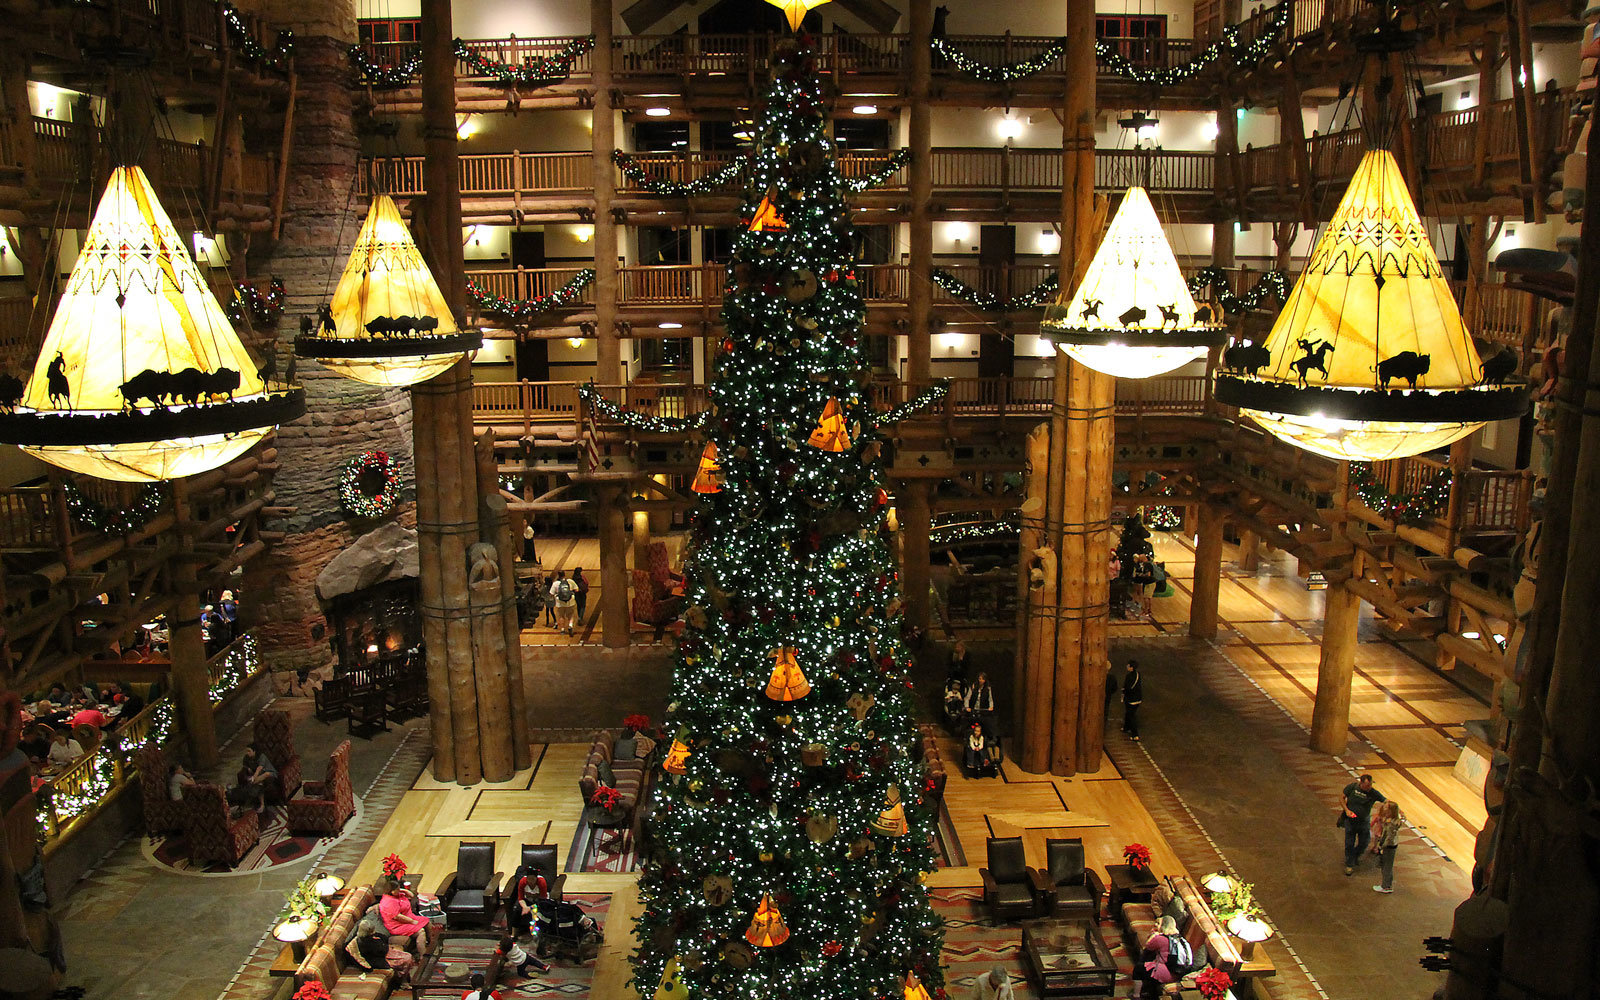 wilderness lodge lobby at christmas - Disney Christmas Decorations